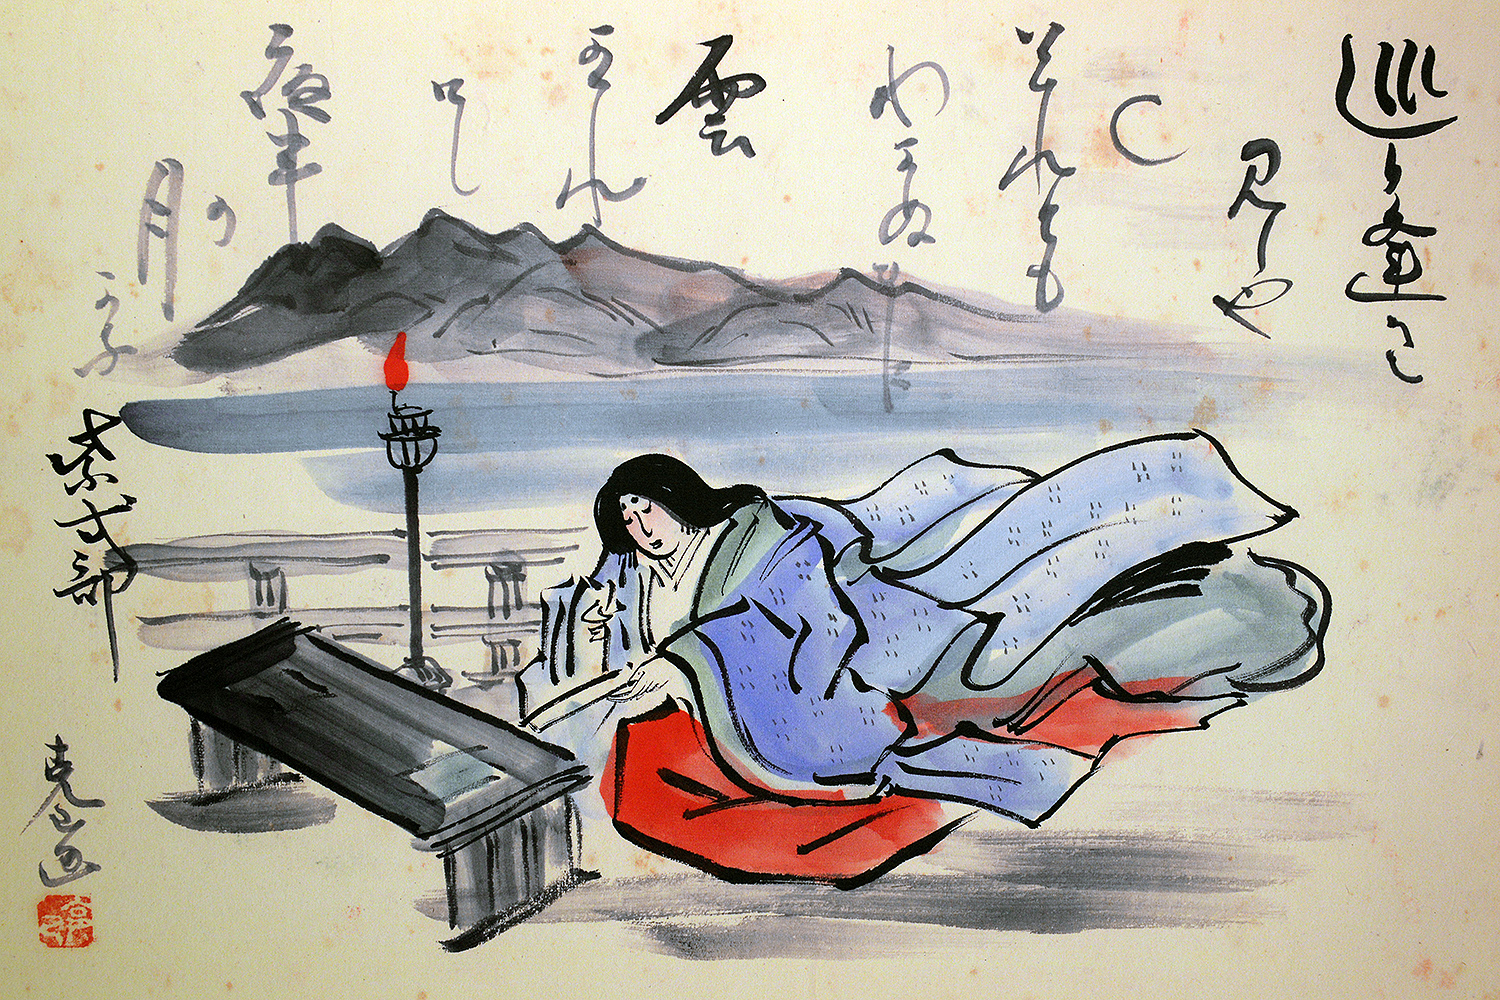 "The illustration ""Lady Murasaki (1928)"" depicts Lady Murasaki Shikibu, one of the key literary figures during the Heian period (794-1185), a time of great literary accomplishment in Japanese history. The artist has depicted Lady Murasaki at a writing desk with her colorful court costume spread around her with misty mountains in the background."